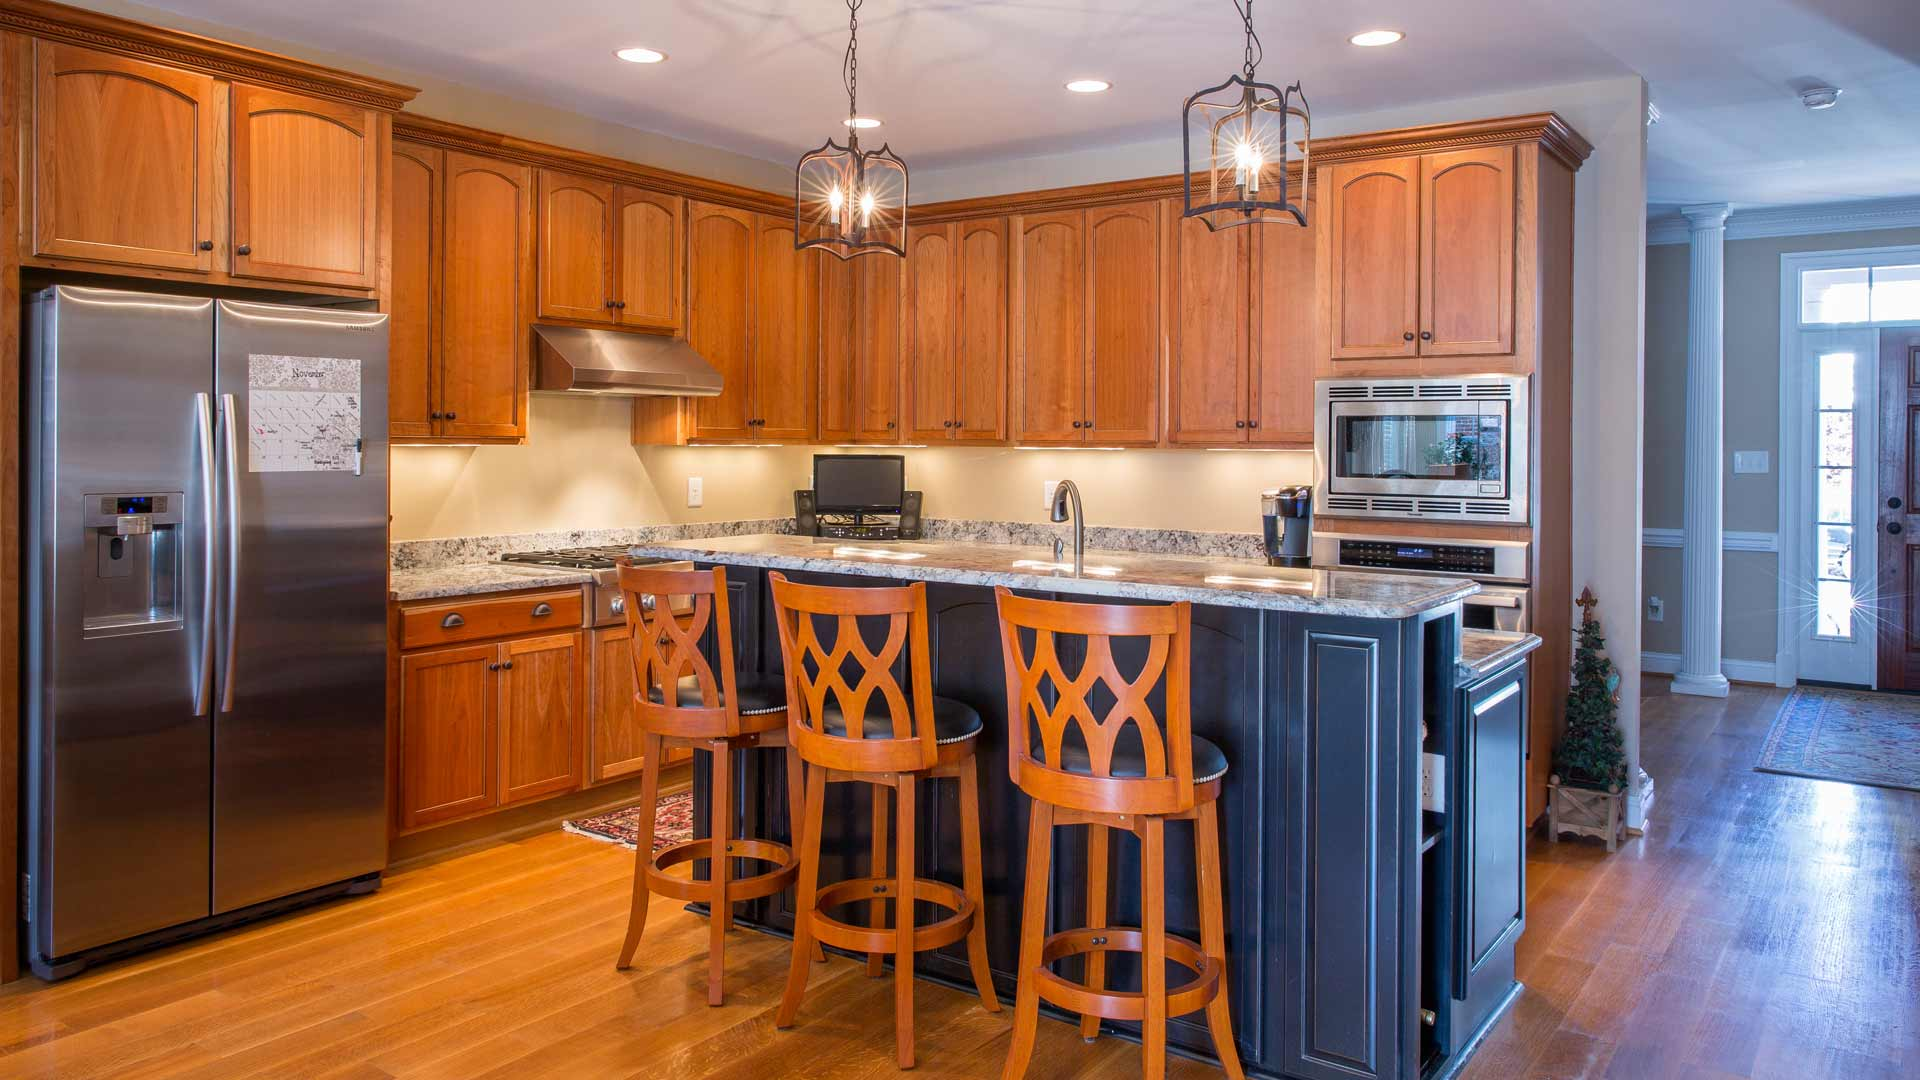 The Kittrell Company Kitchen